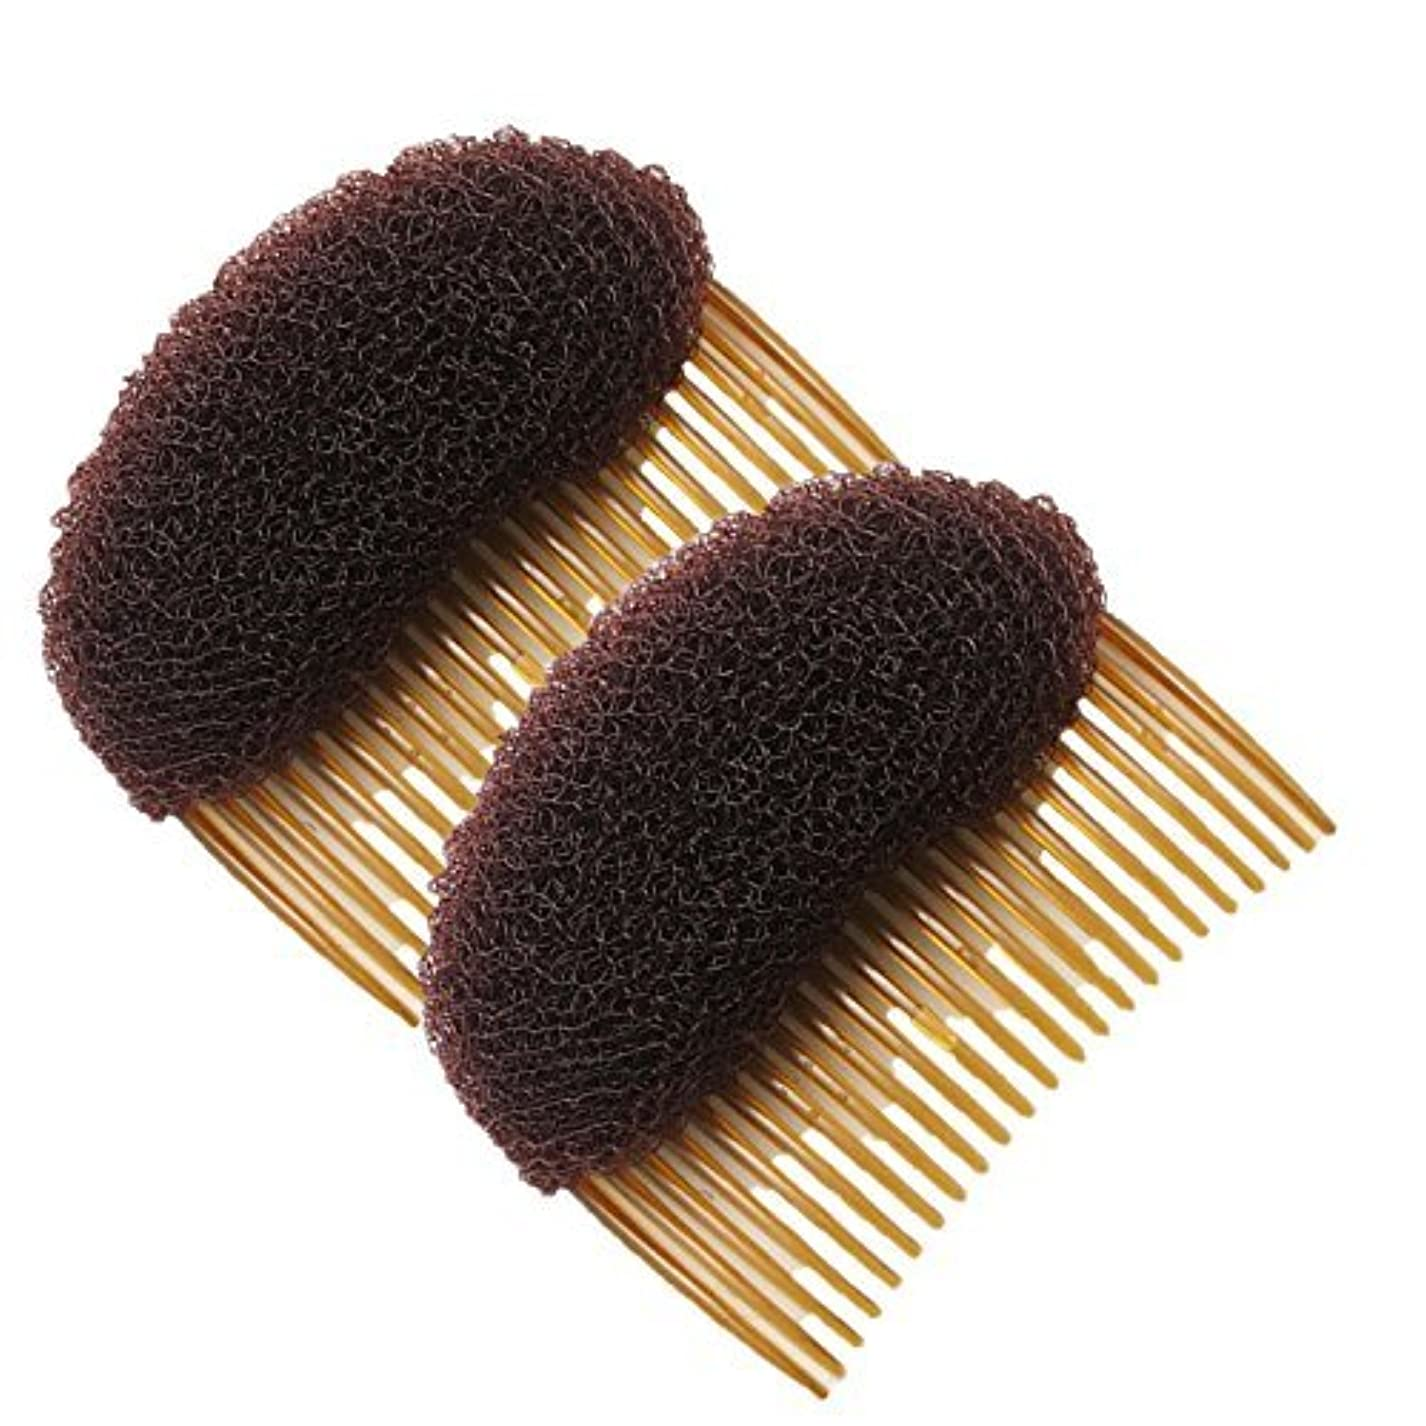 Healtheveryday?2PCS Charming BUMP IT UP Volume Inserts Do Beehive hair styler Insert Tool Hair Comb Black/Brown colors for choose Hot (Brown) [並行輸入品]